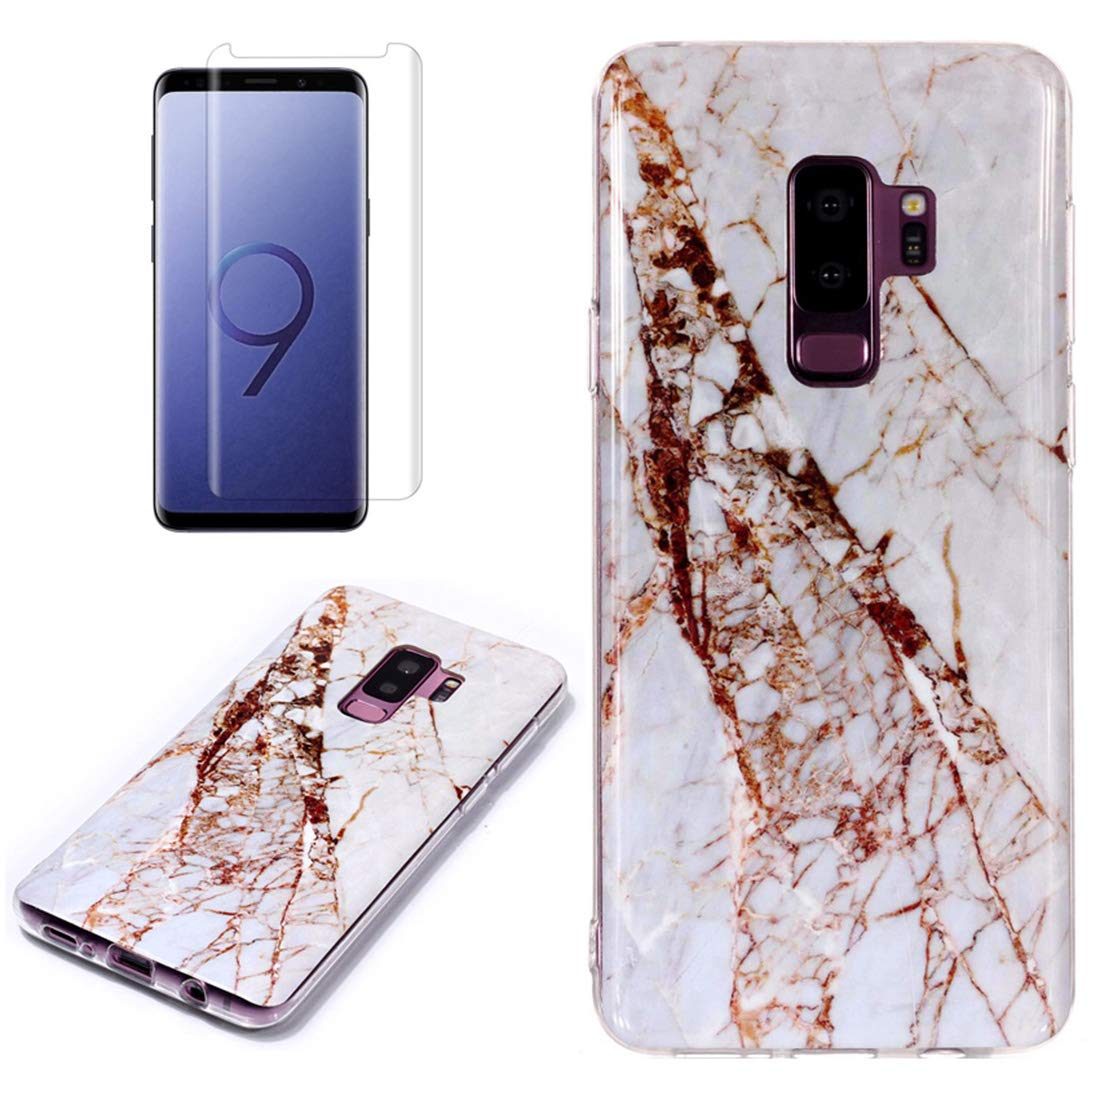 for Samsung Galaxy S9 Plus Marble Case with Screen Protector,Unique Pattern Design Skin Ultra Thin Slim Fit Soft Gel Silicone Case,QFFUN Shockproof Anti-Scratch Protective Back Cover - White